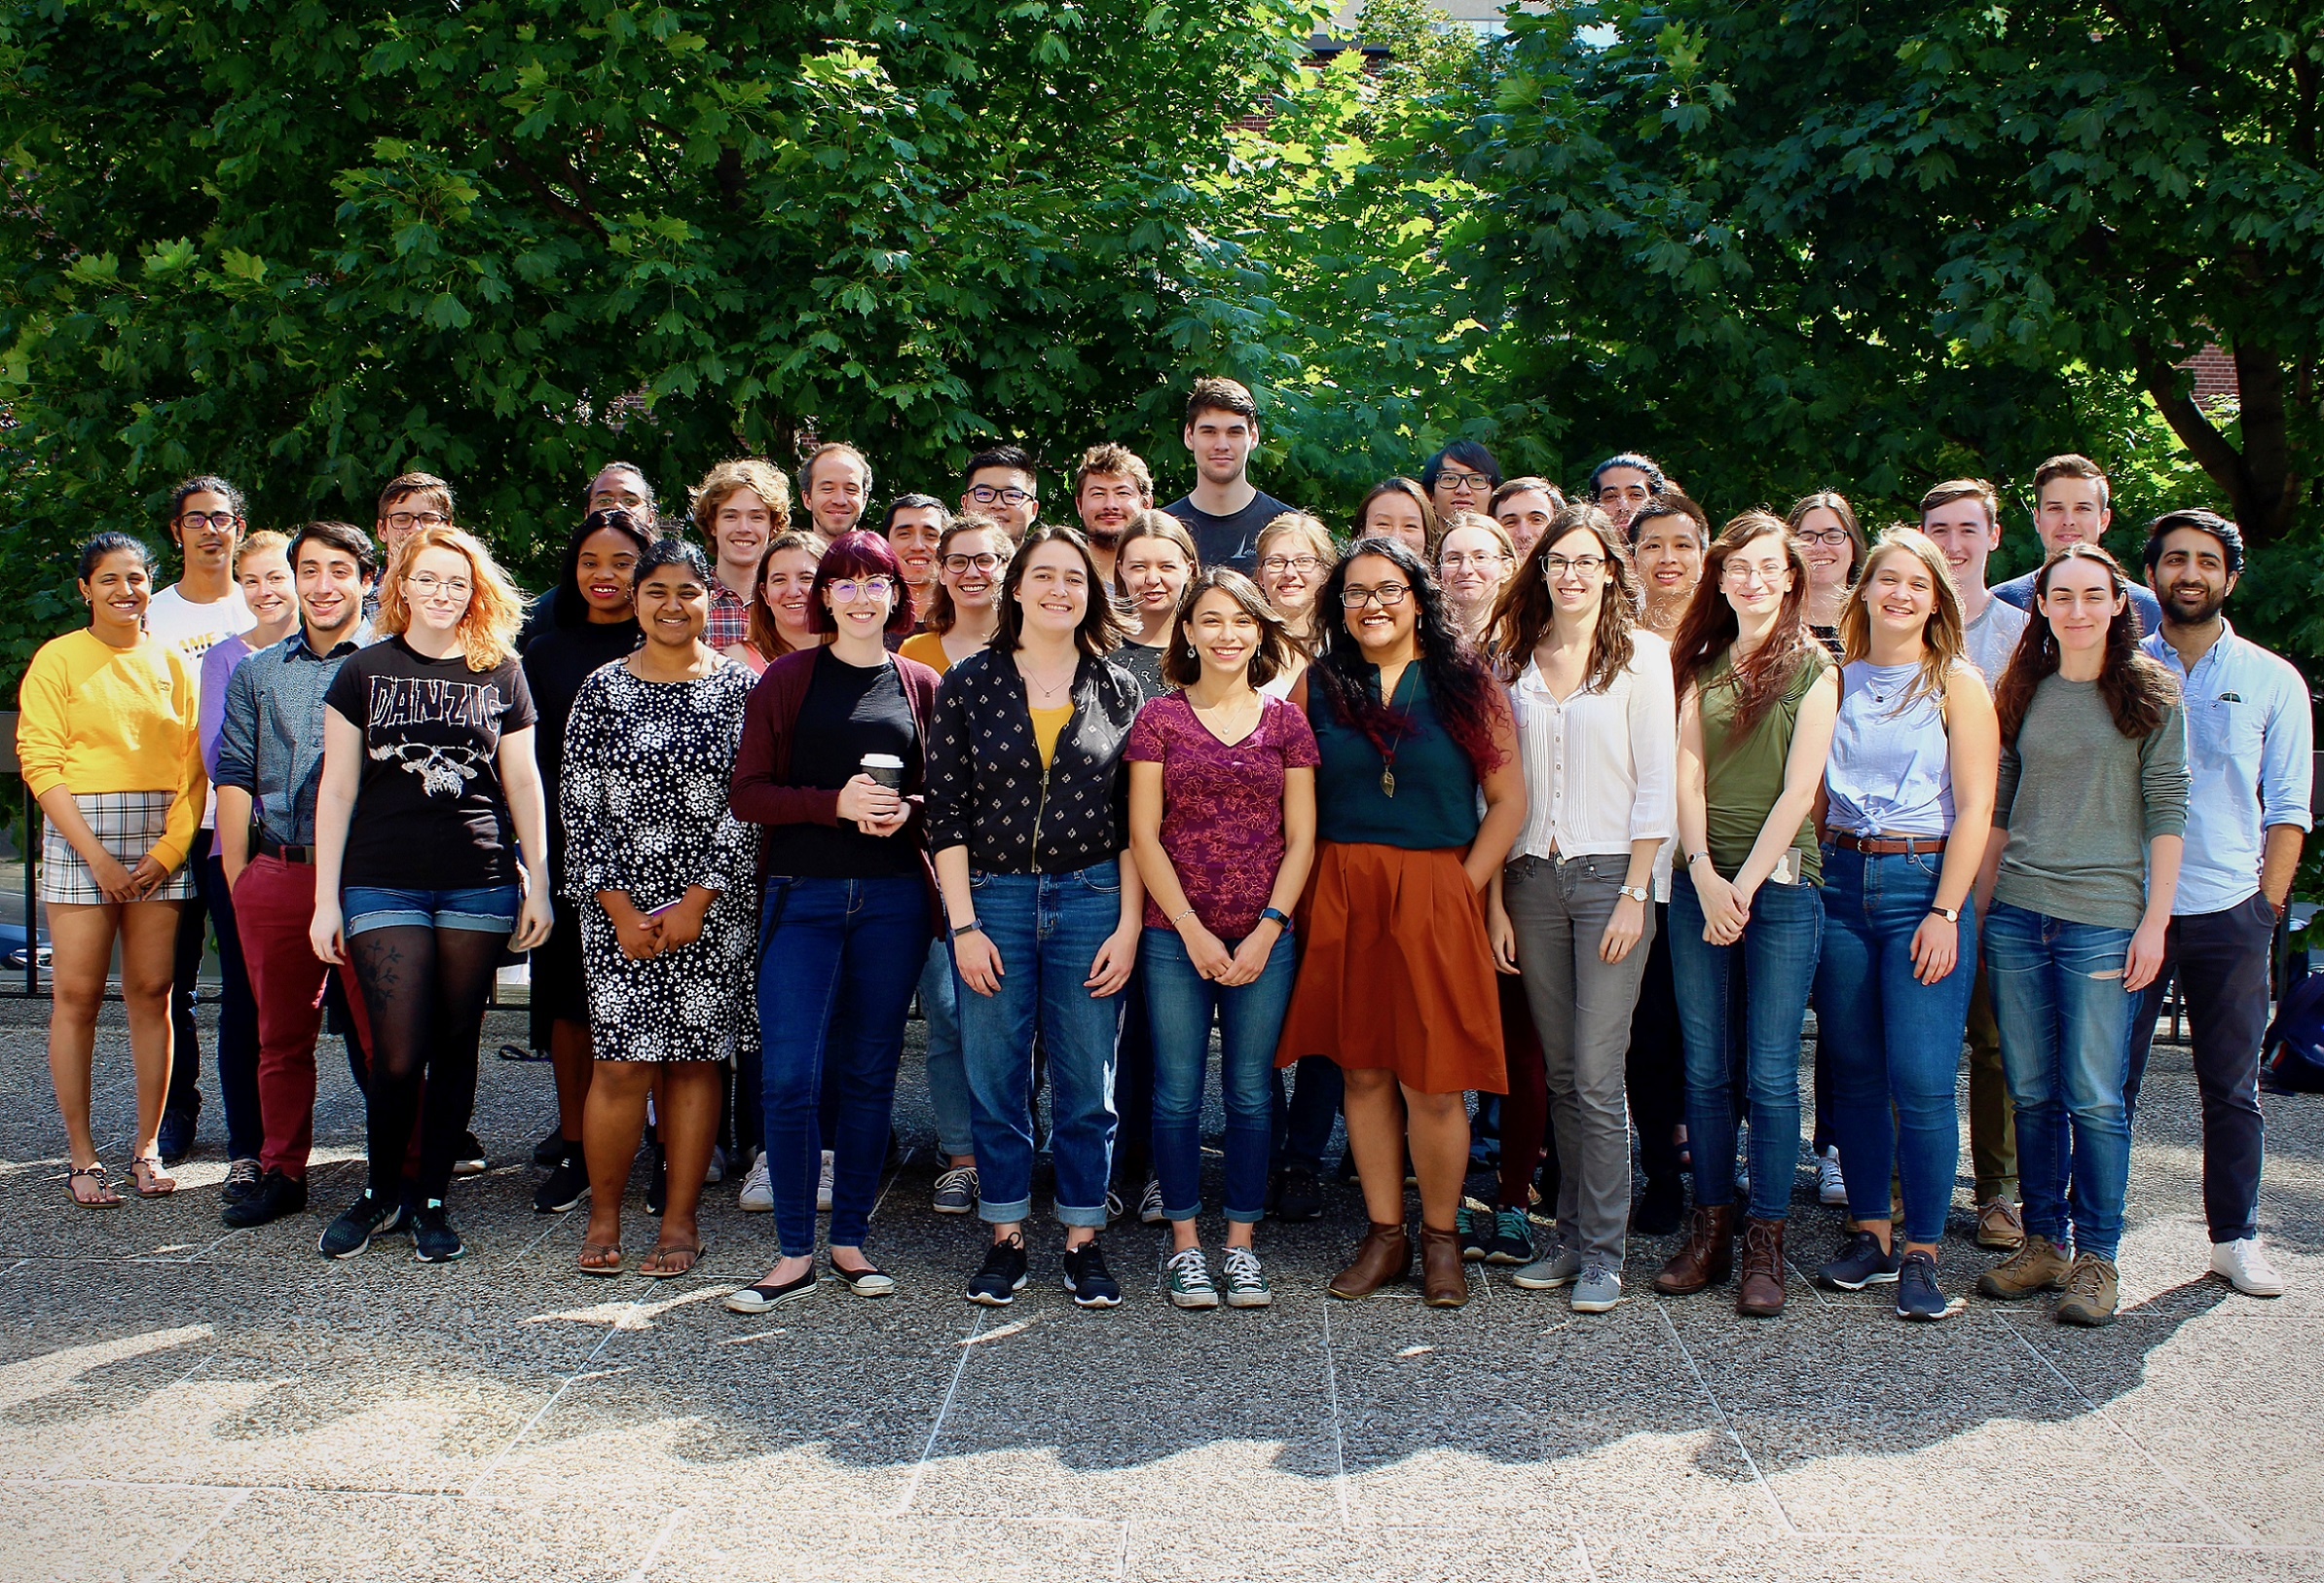 Graduate Students Group Photo (September 18, 2019,  courtesy Anna O'Grady)